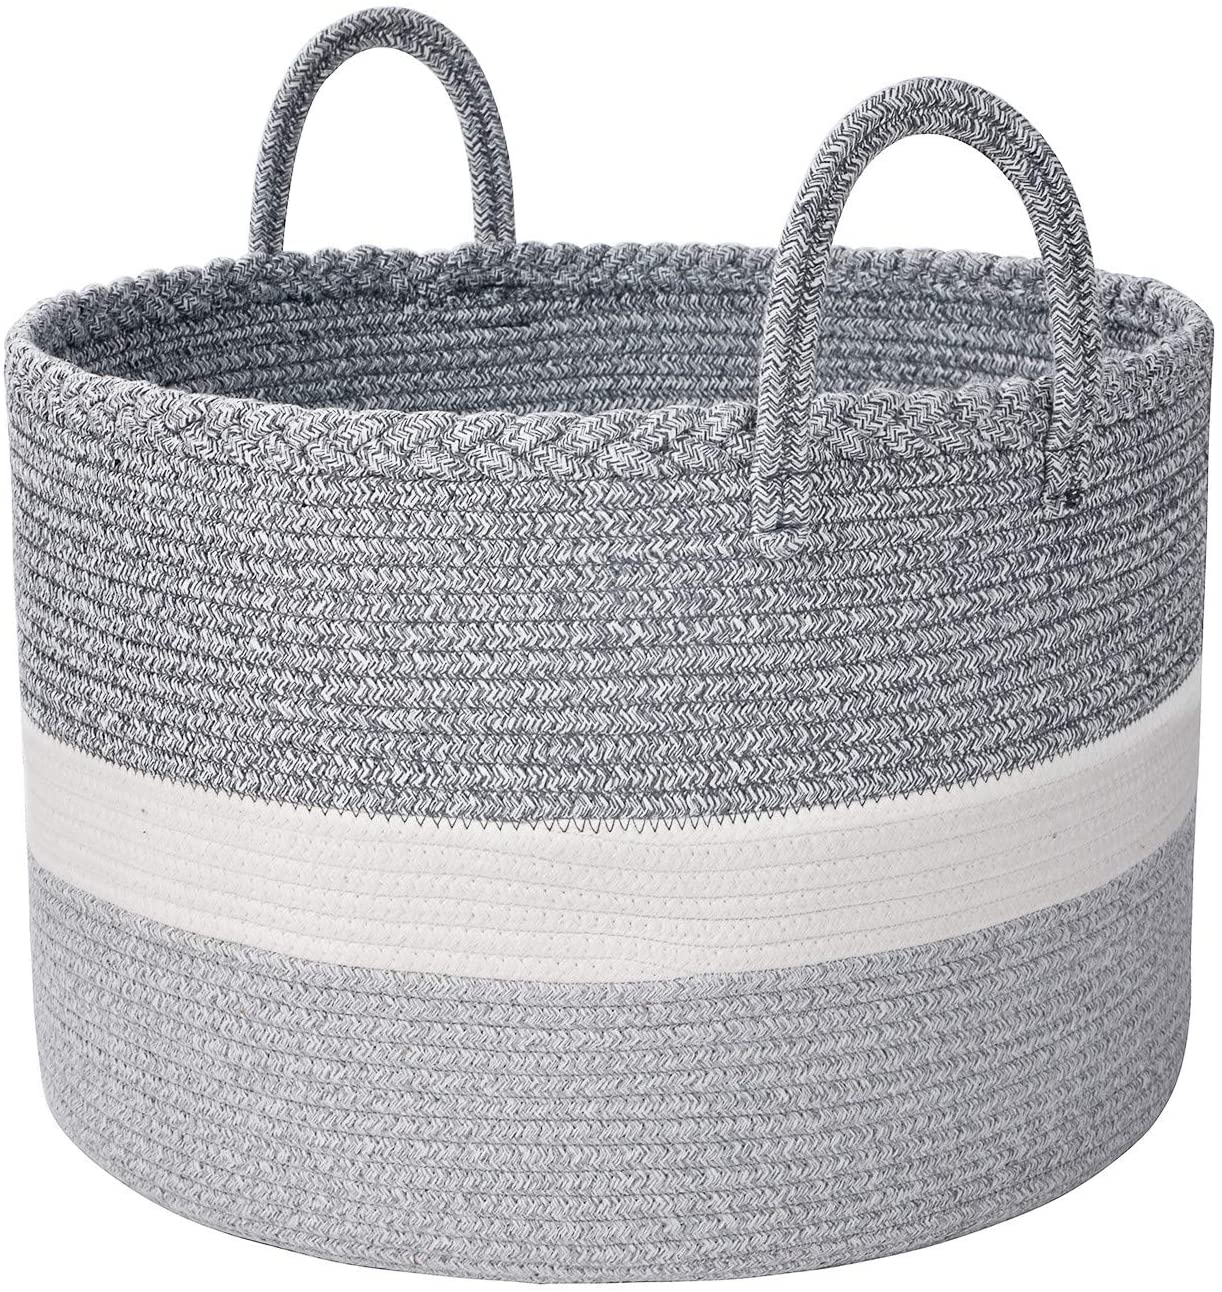 Bsubseach Extra Large Cotton Rope Storage Baskets, 20